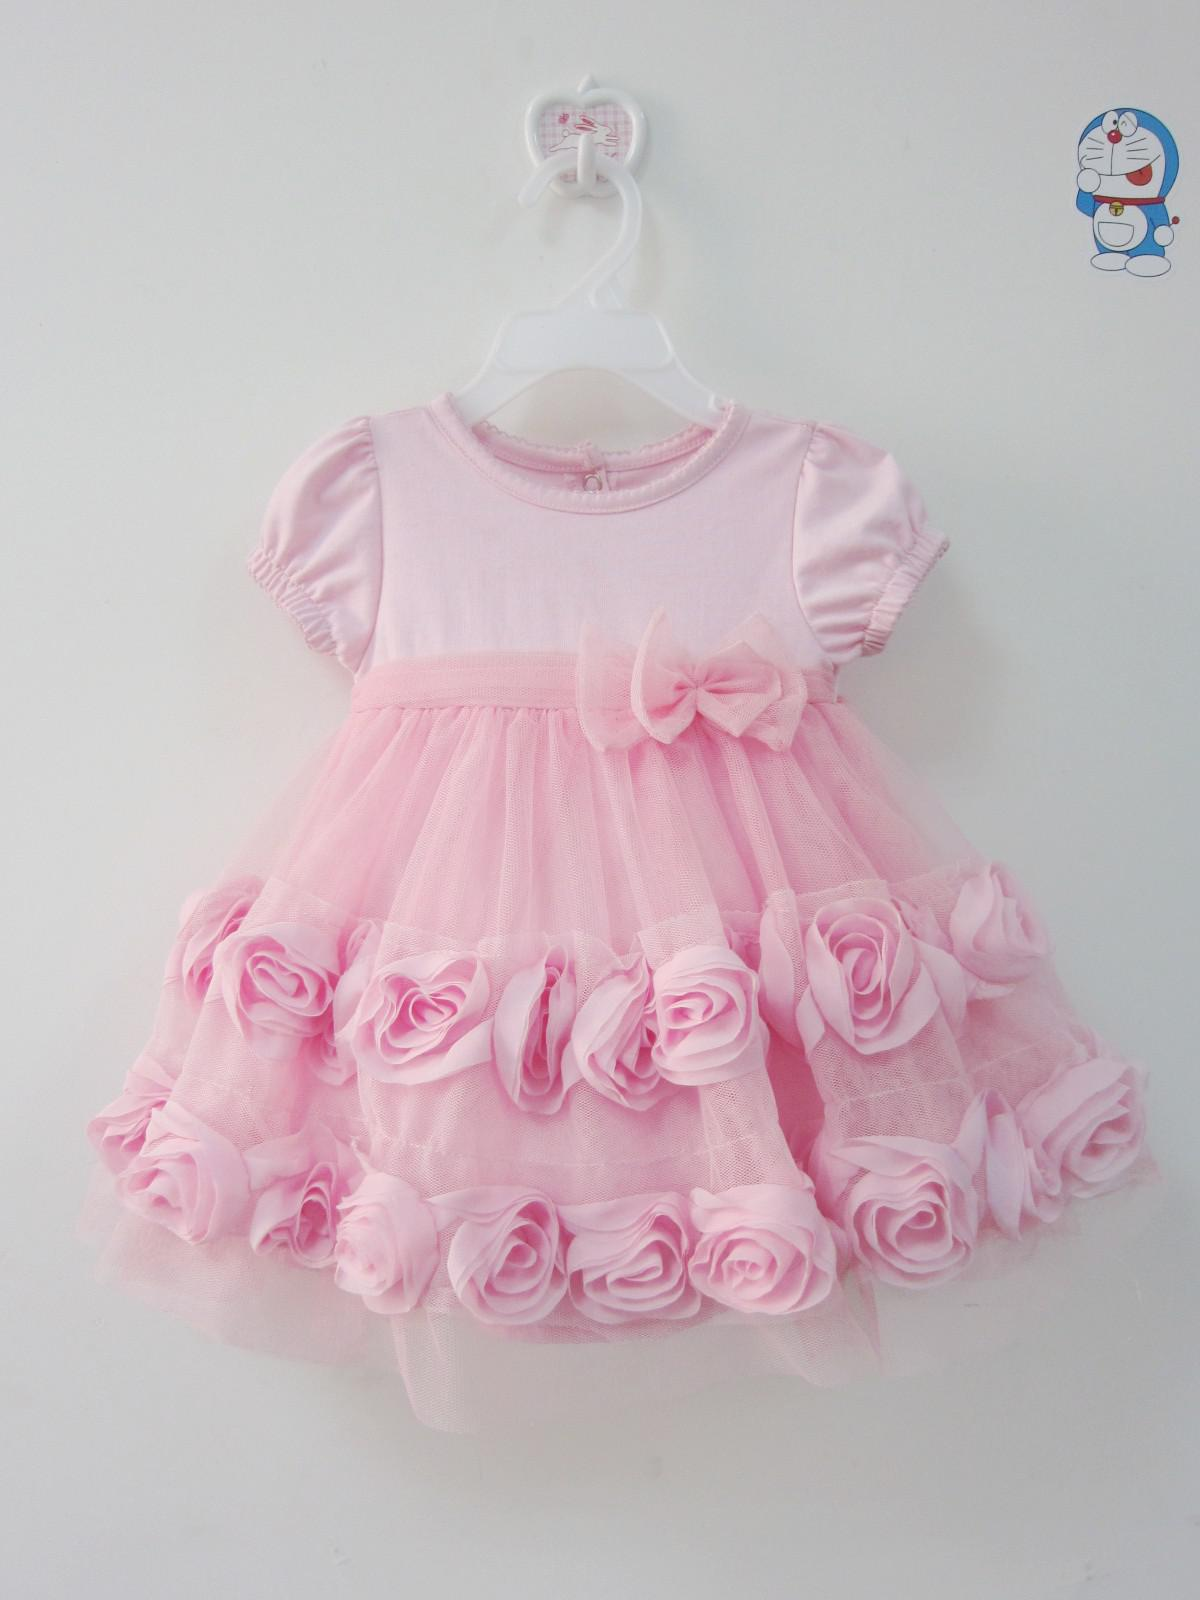 Baby / girl dresses Baby Girl Clothes - UK Baby girl Pink Girls - dresses My Baby Girl Childrens Designer Clothes Designer baby girl clothes Baby girl Fashion Kids fashion Toddler dress Baby clothes (girl) Kid Outfits Baby dresses Baby Shoes Children dress Infant Boy Fashion Little girl fashion Beautiful Clothes Baby girls Sewing for kids Kids.